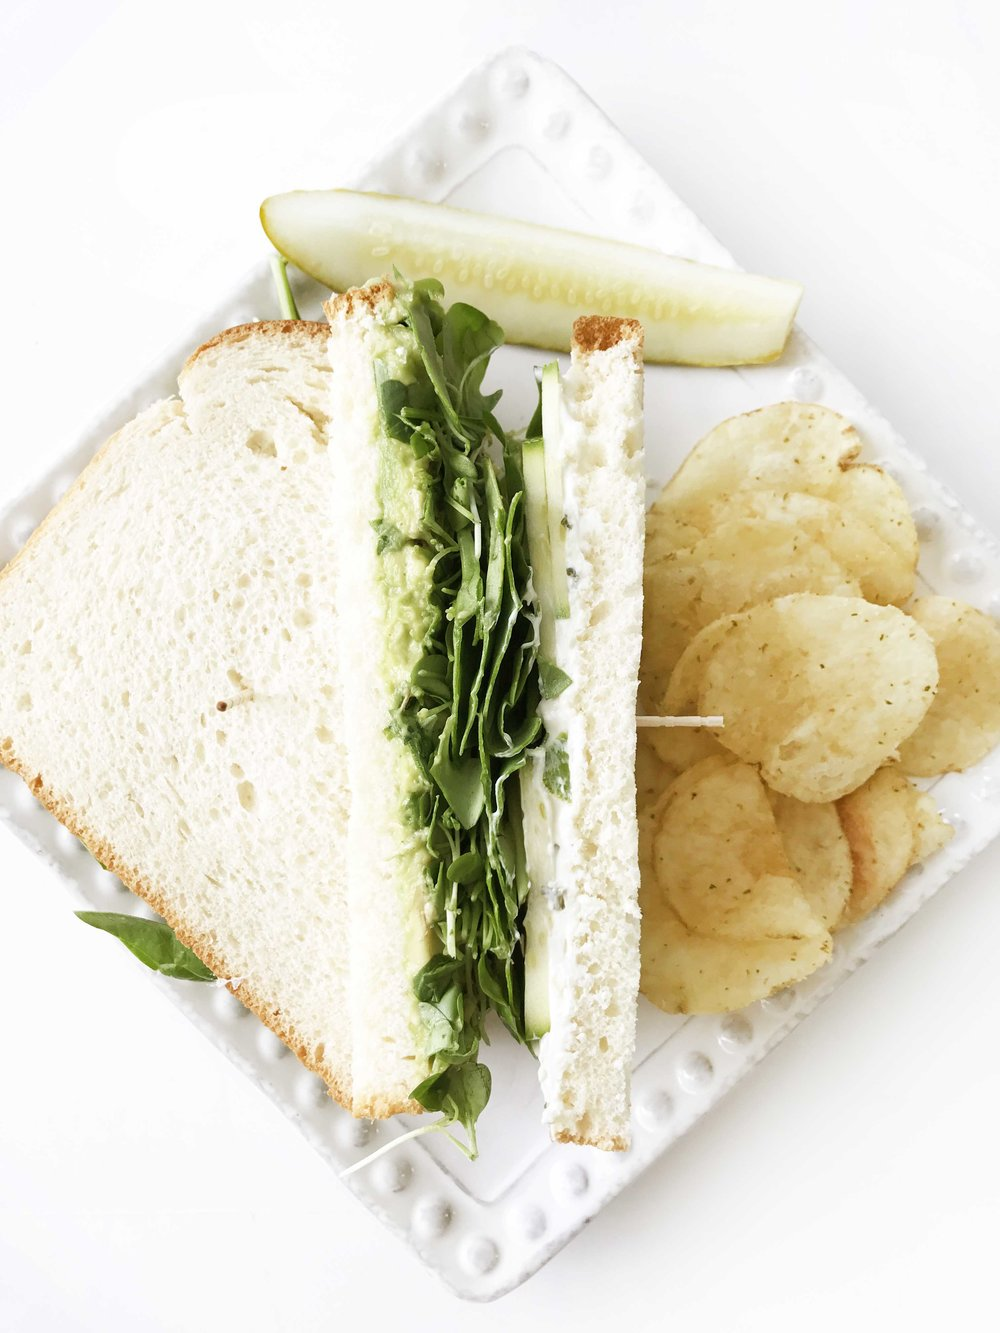 lean-mean-green-sandwich.jpg